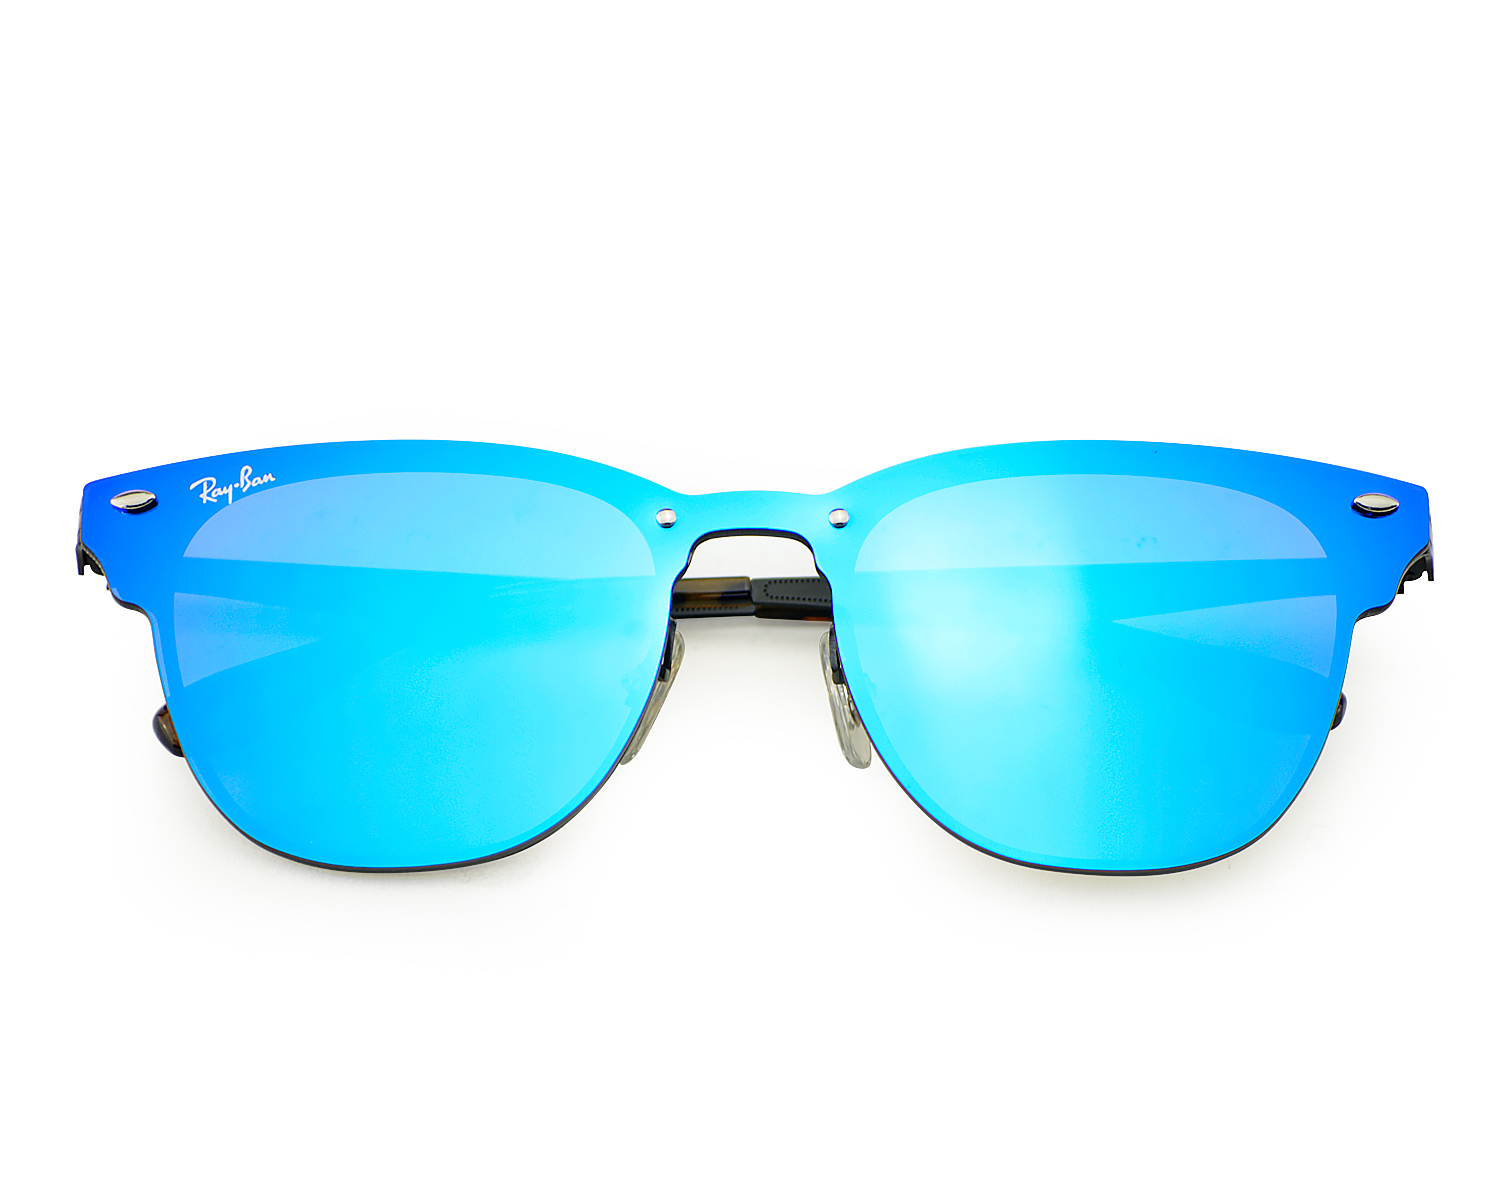 c48634e0fe Ray-Ban RB3576N Blaze Clubmaster 153 7V Black Frame Violet Blue Mirror  Lenses Unisex Sunglasses 47mm